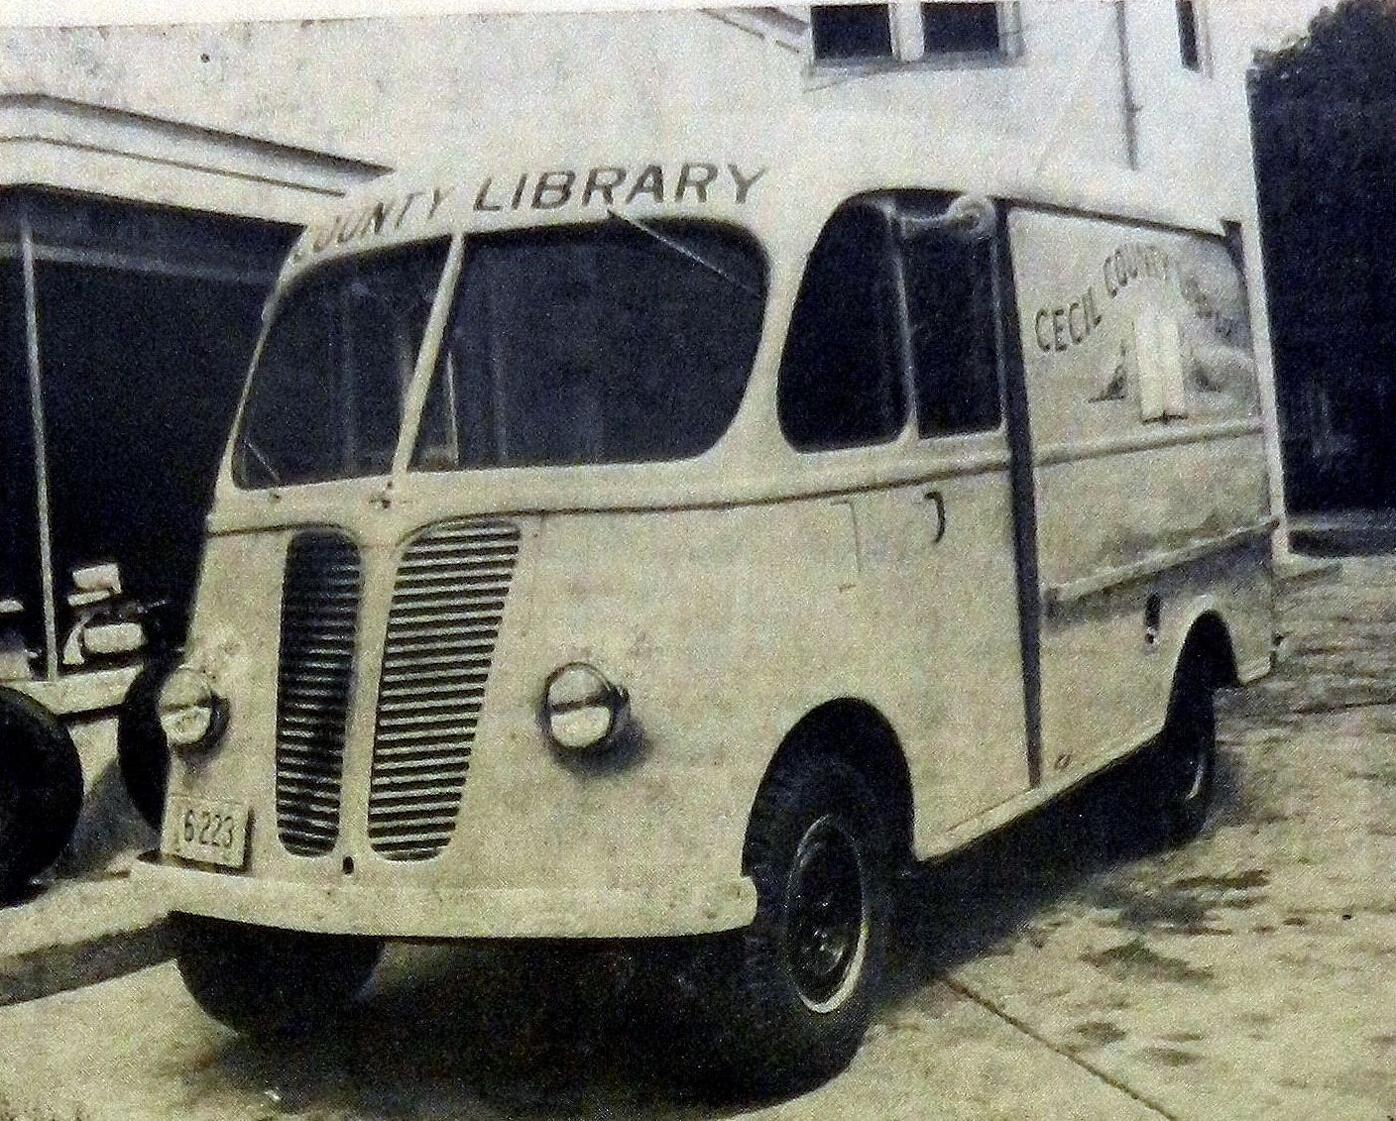 Hist Soc News Bookmobile